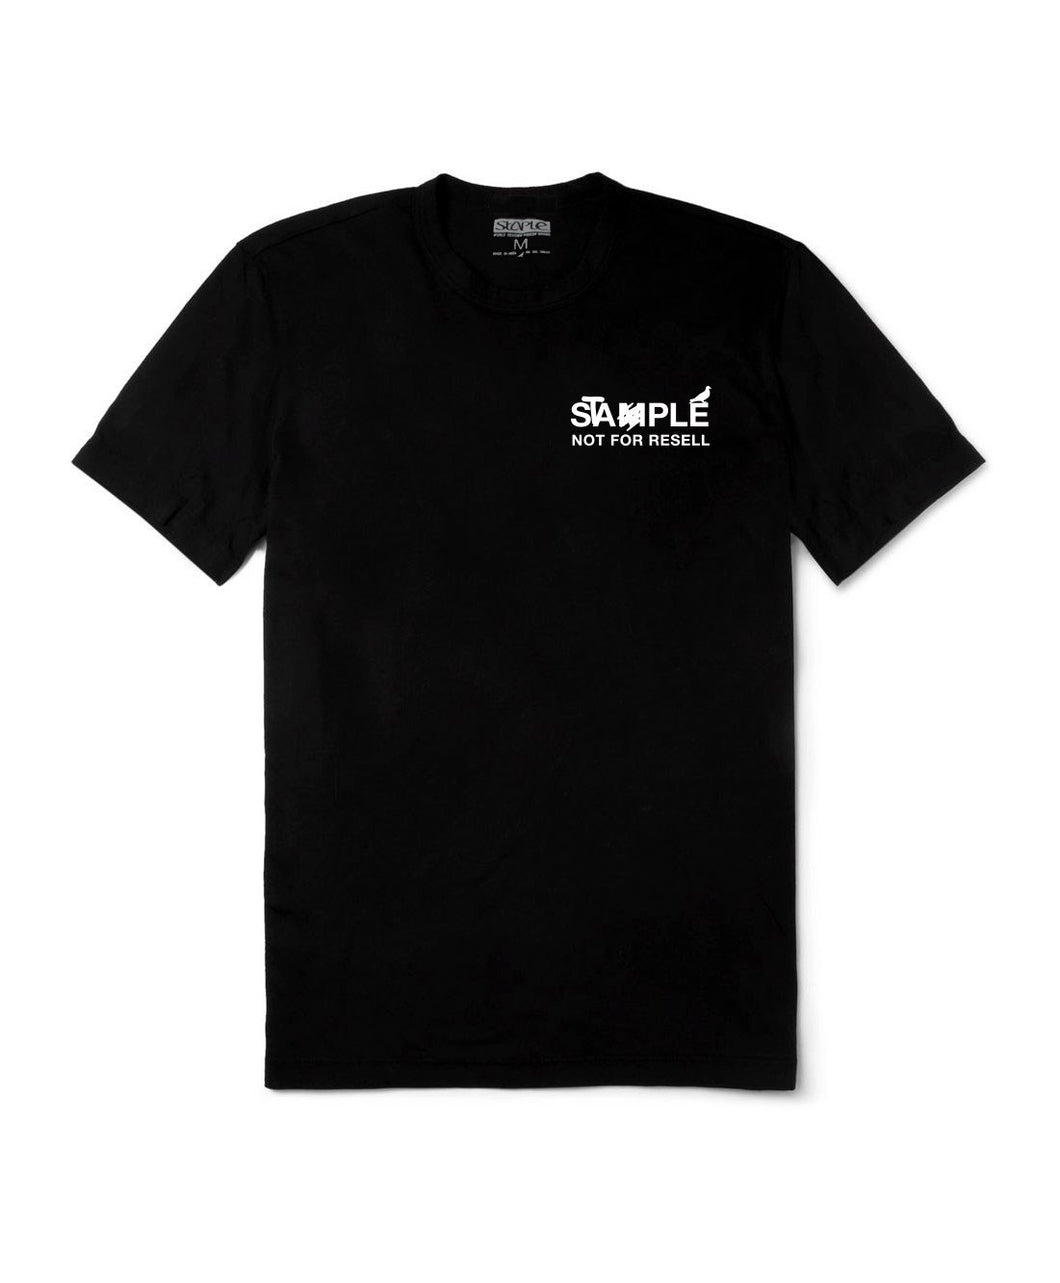 Staple sample tee size M brand new